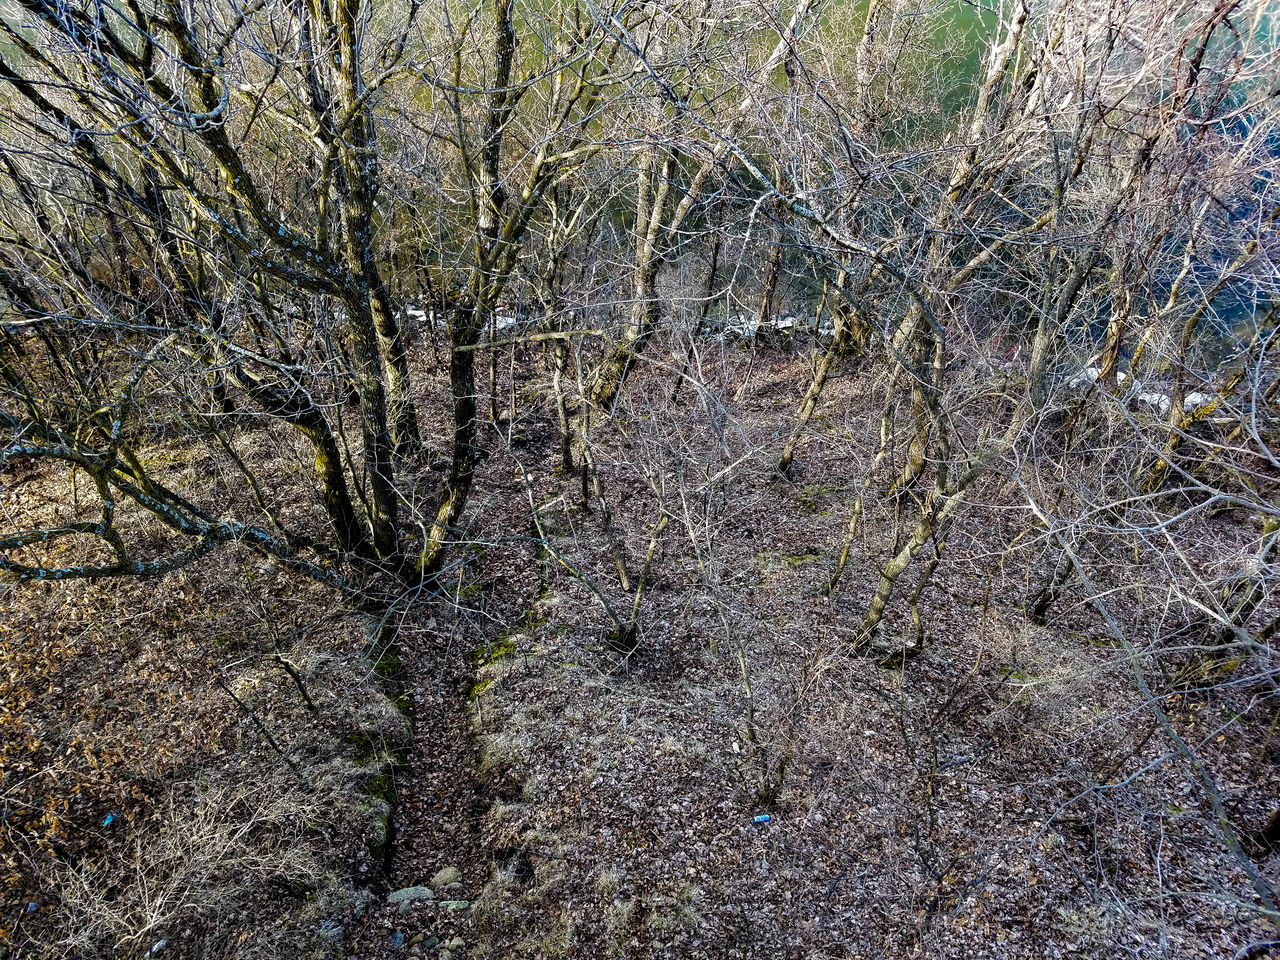 Backgrounds Full Frame No People Nature Growth Abstract Beauty In Nature Outdoors Day Trees Reflection Lake Scenics Lake Koronis March 2017 Springtime Spring Bare Trees Minnesota Koronis Regional Park Forest Water View From Above Above The Trees Looking Down